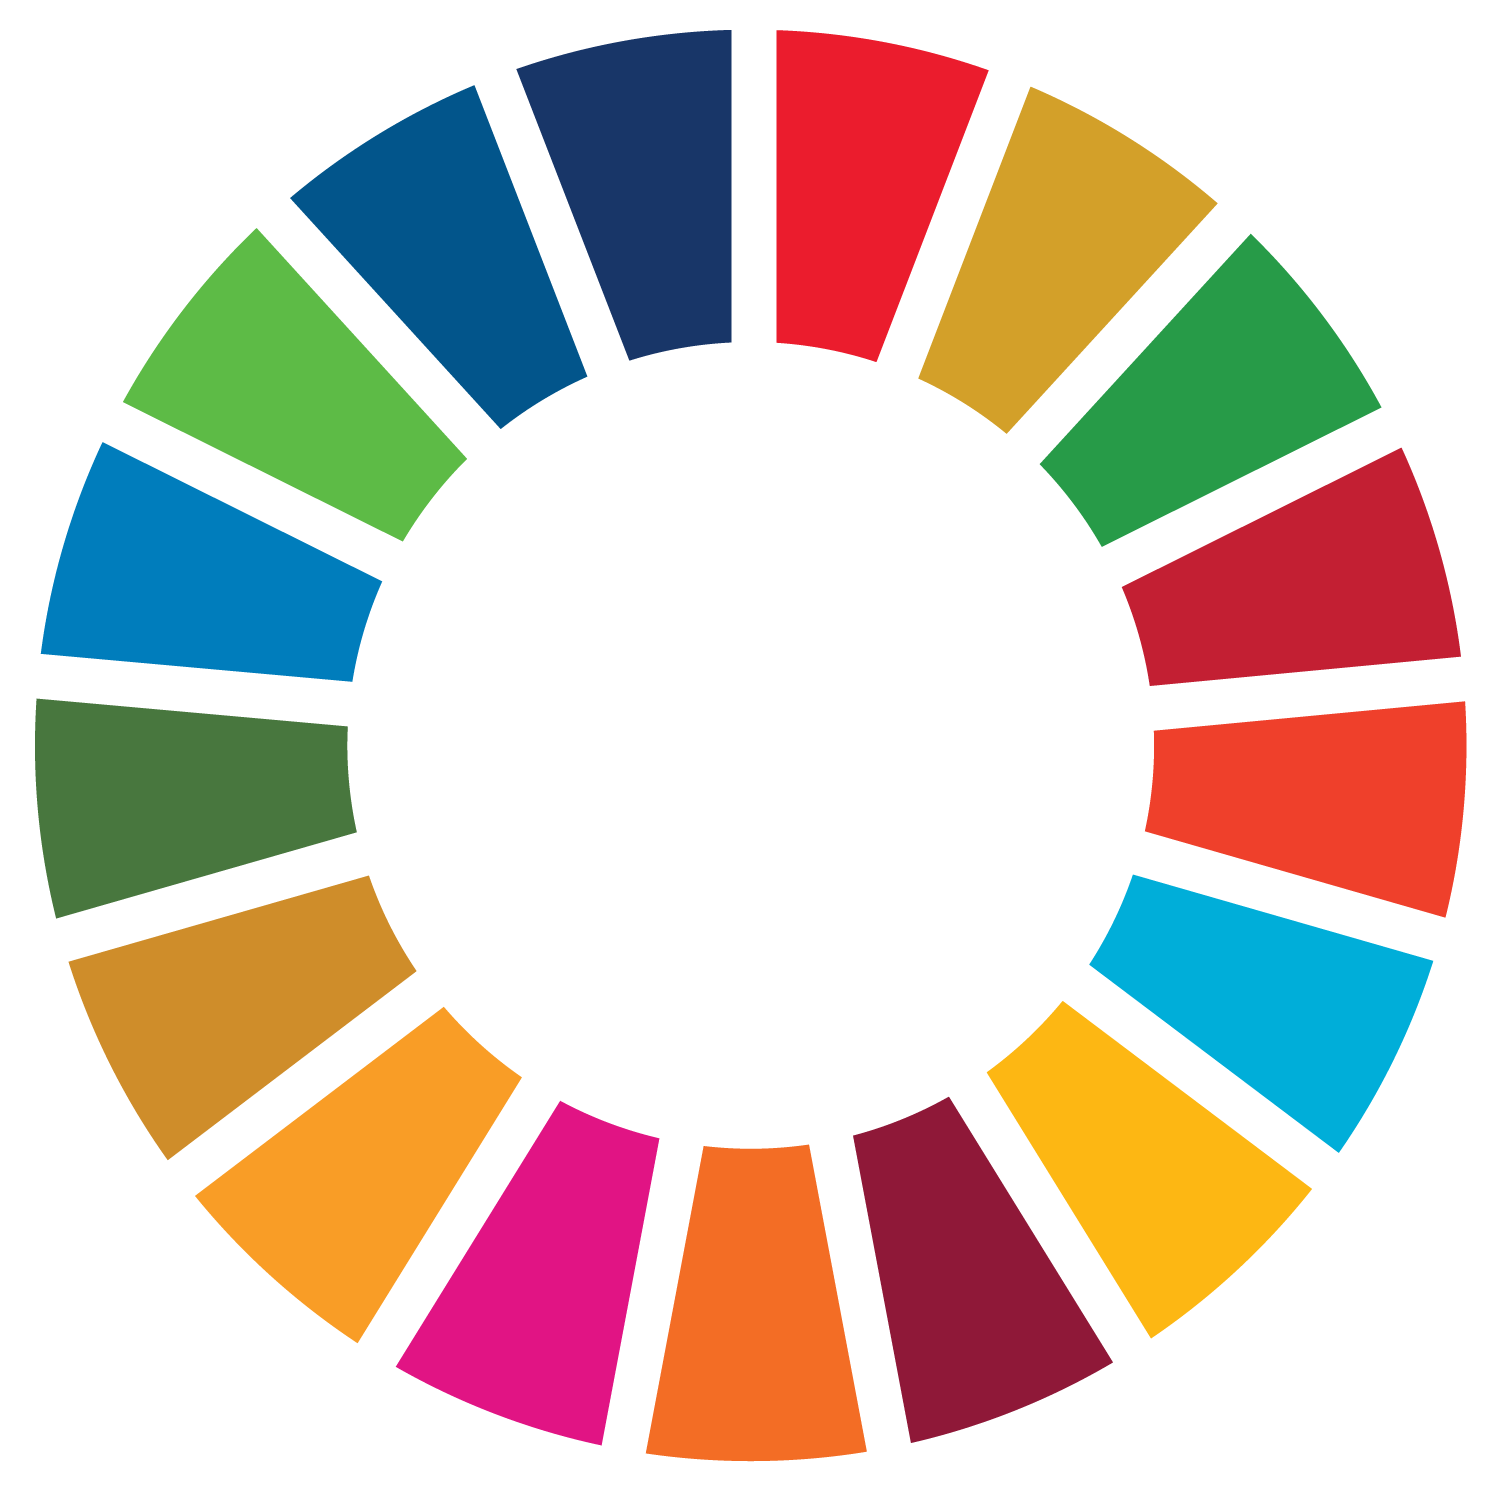 The 2030 Agenda for Sustainable Development